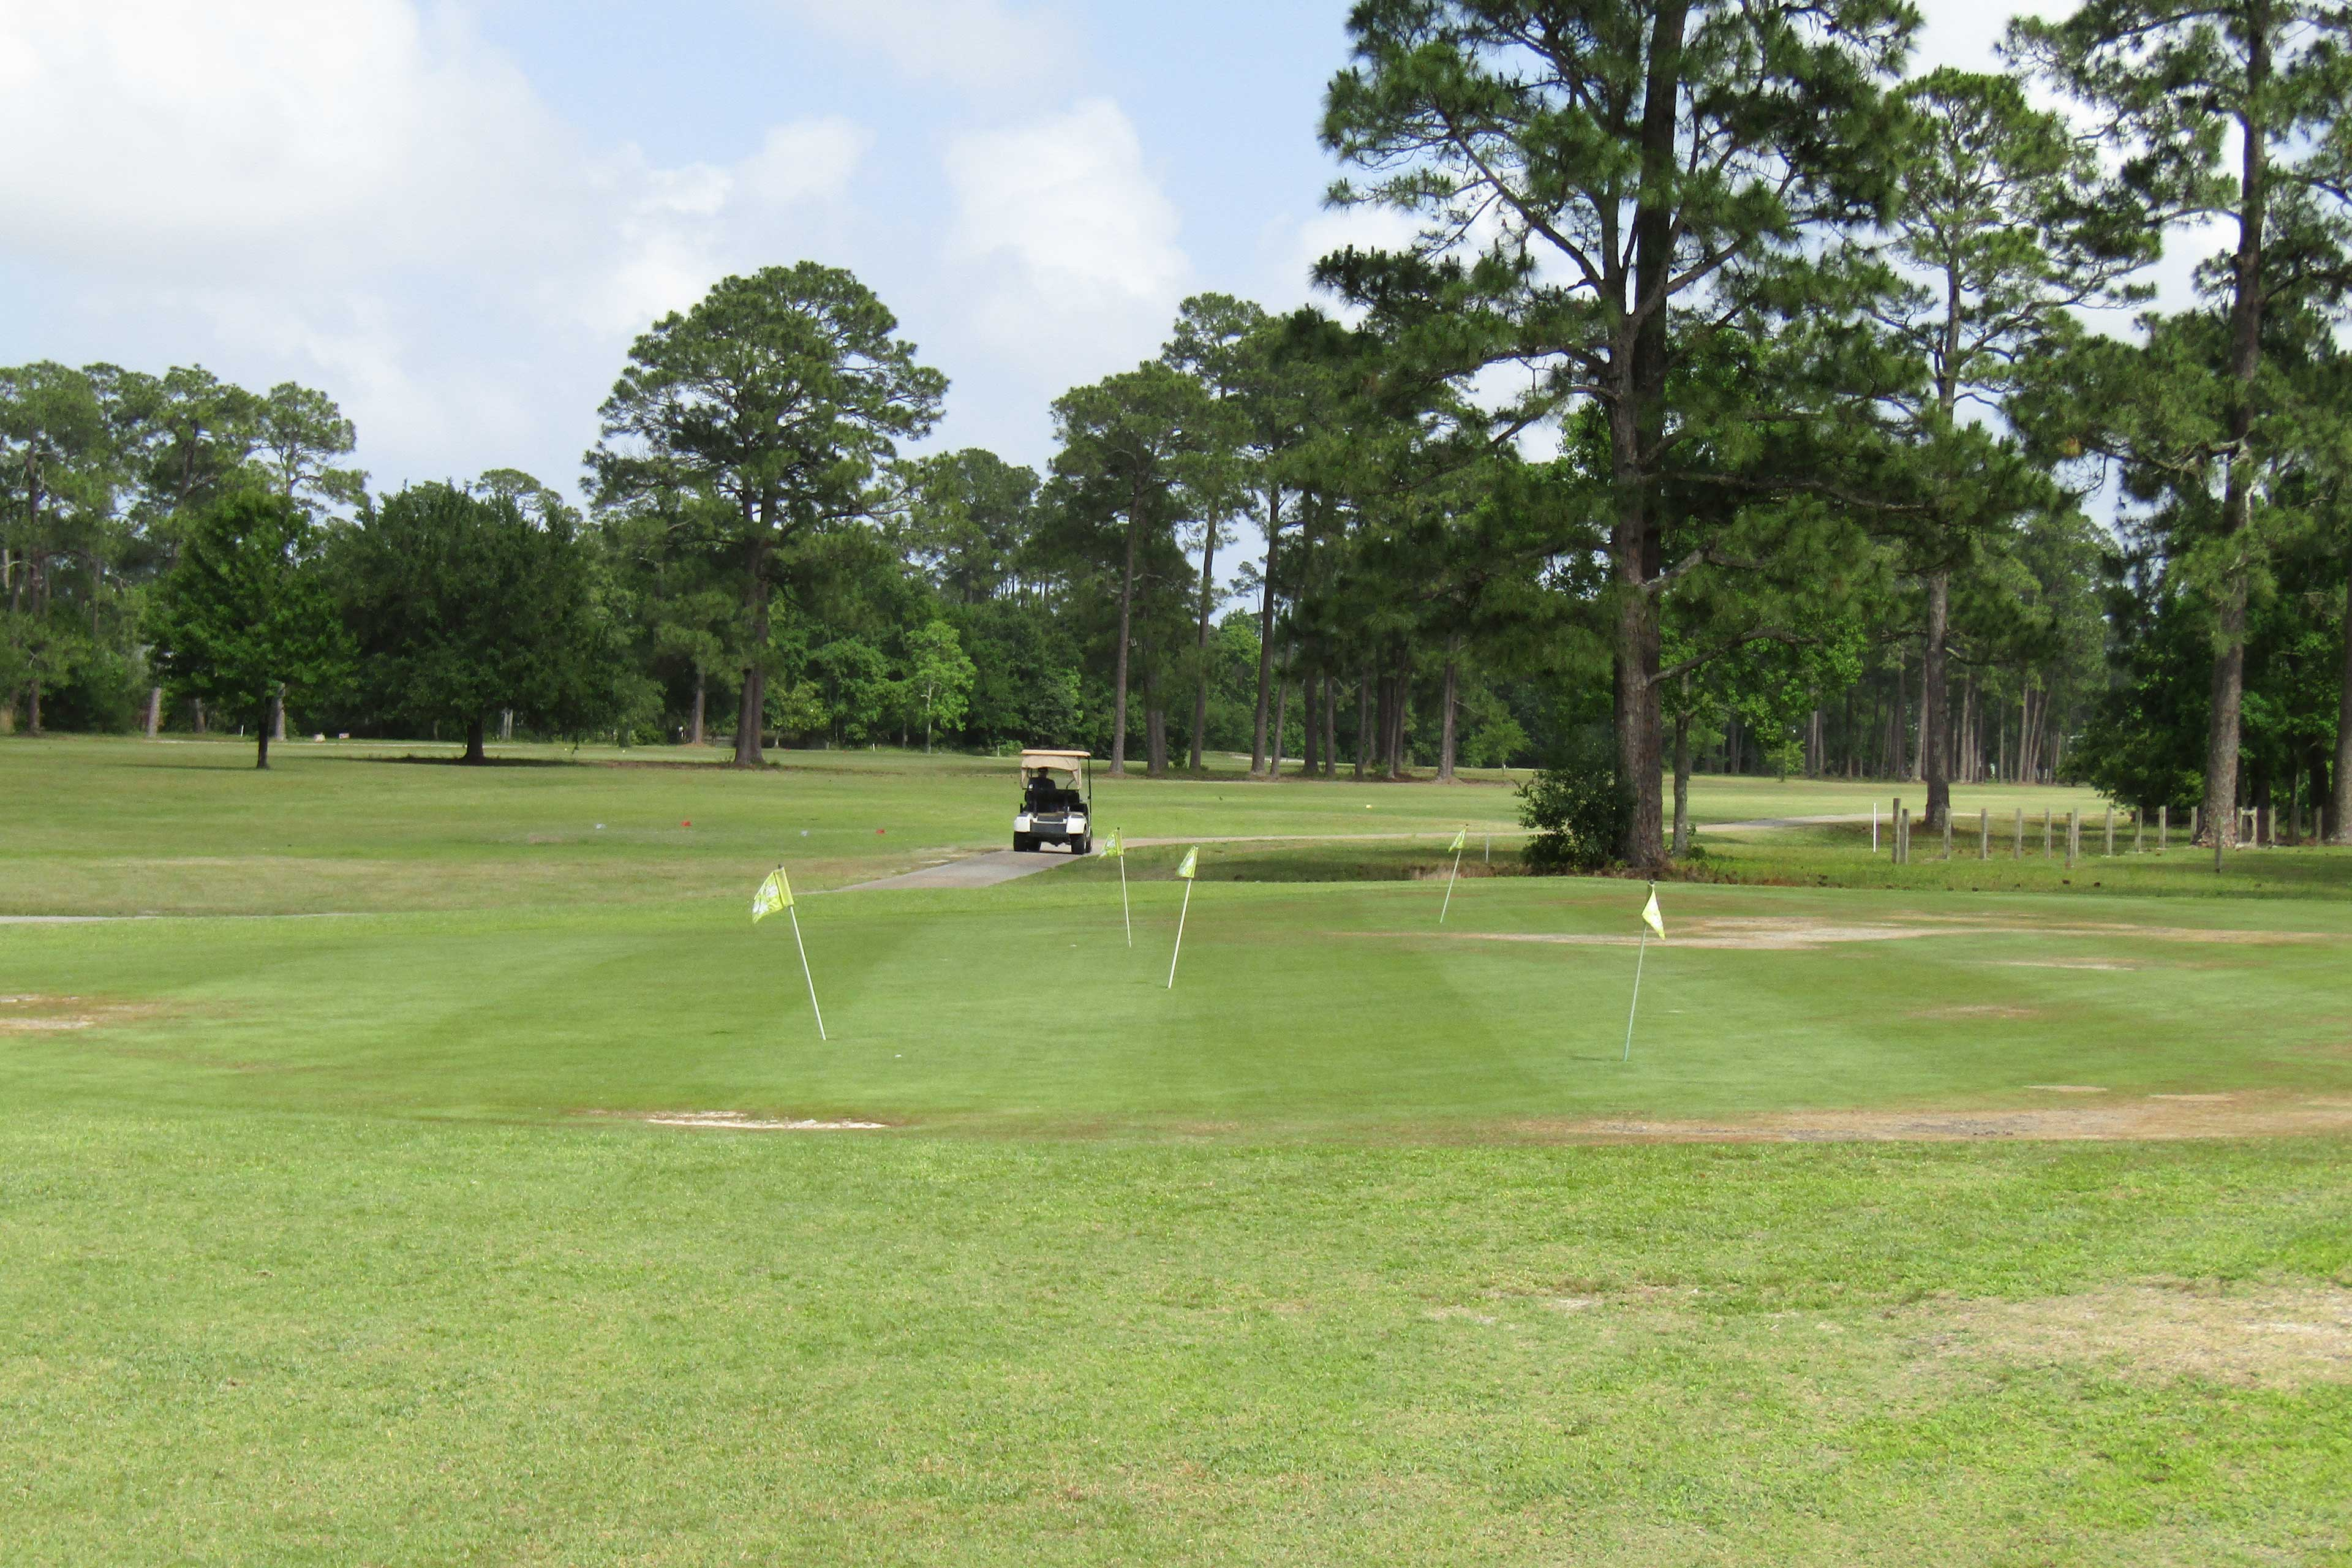 Book a tee time at a nearby course and drive a golf cart along the fairways.